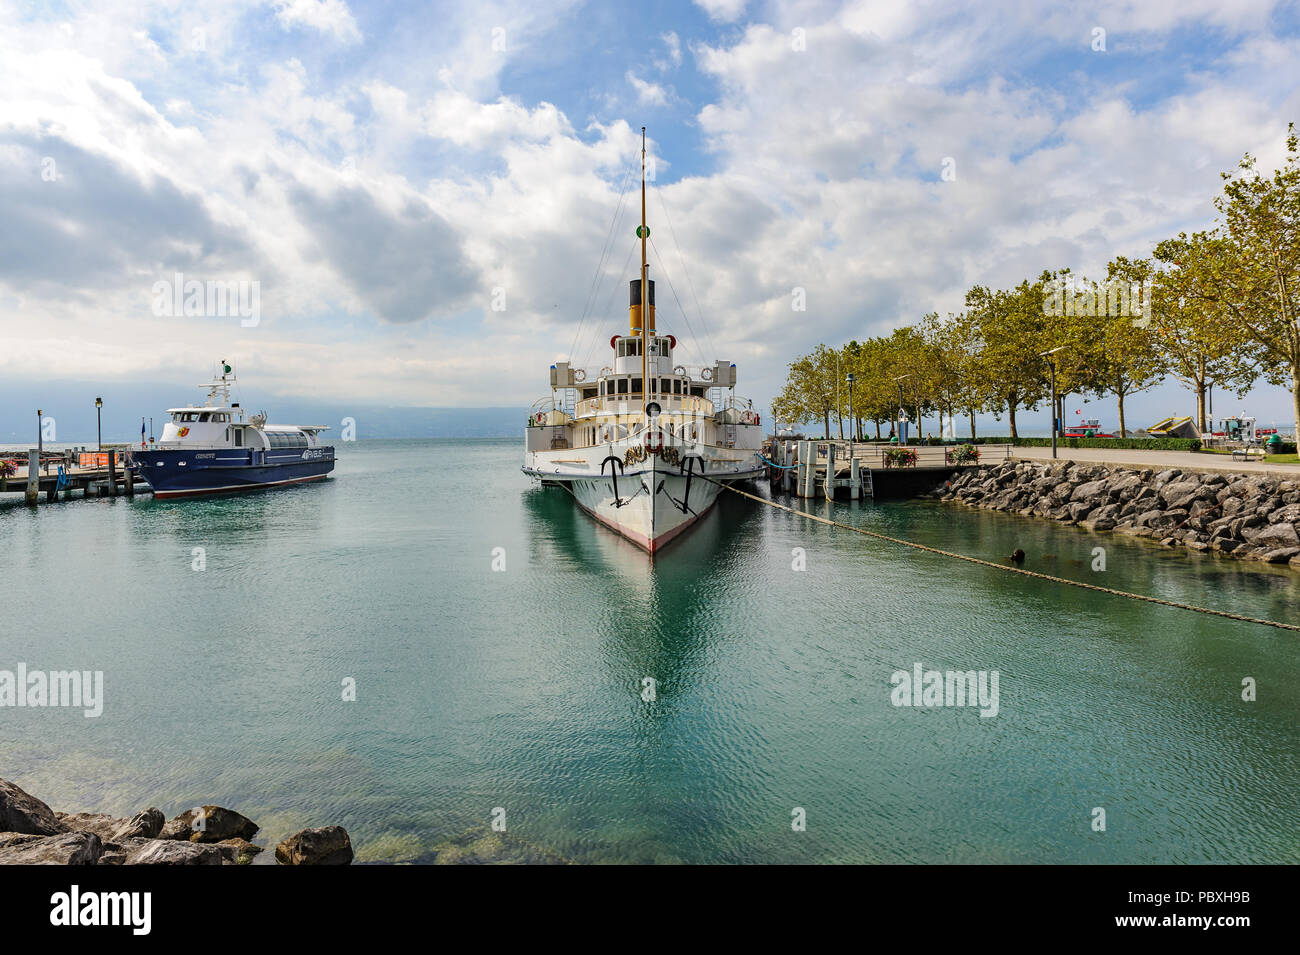 A paddle steamer, a unique and modern restored steamboat as commuter passenger ferry on Lake Geneva, Switzerland Stock Photo